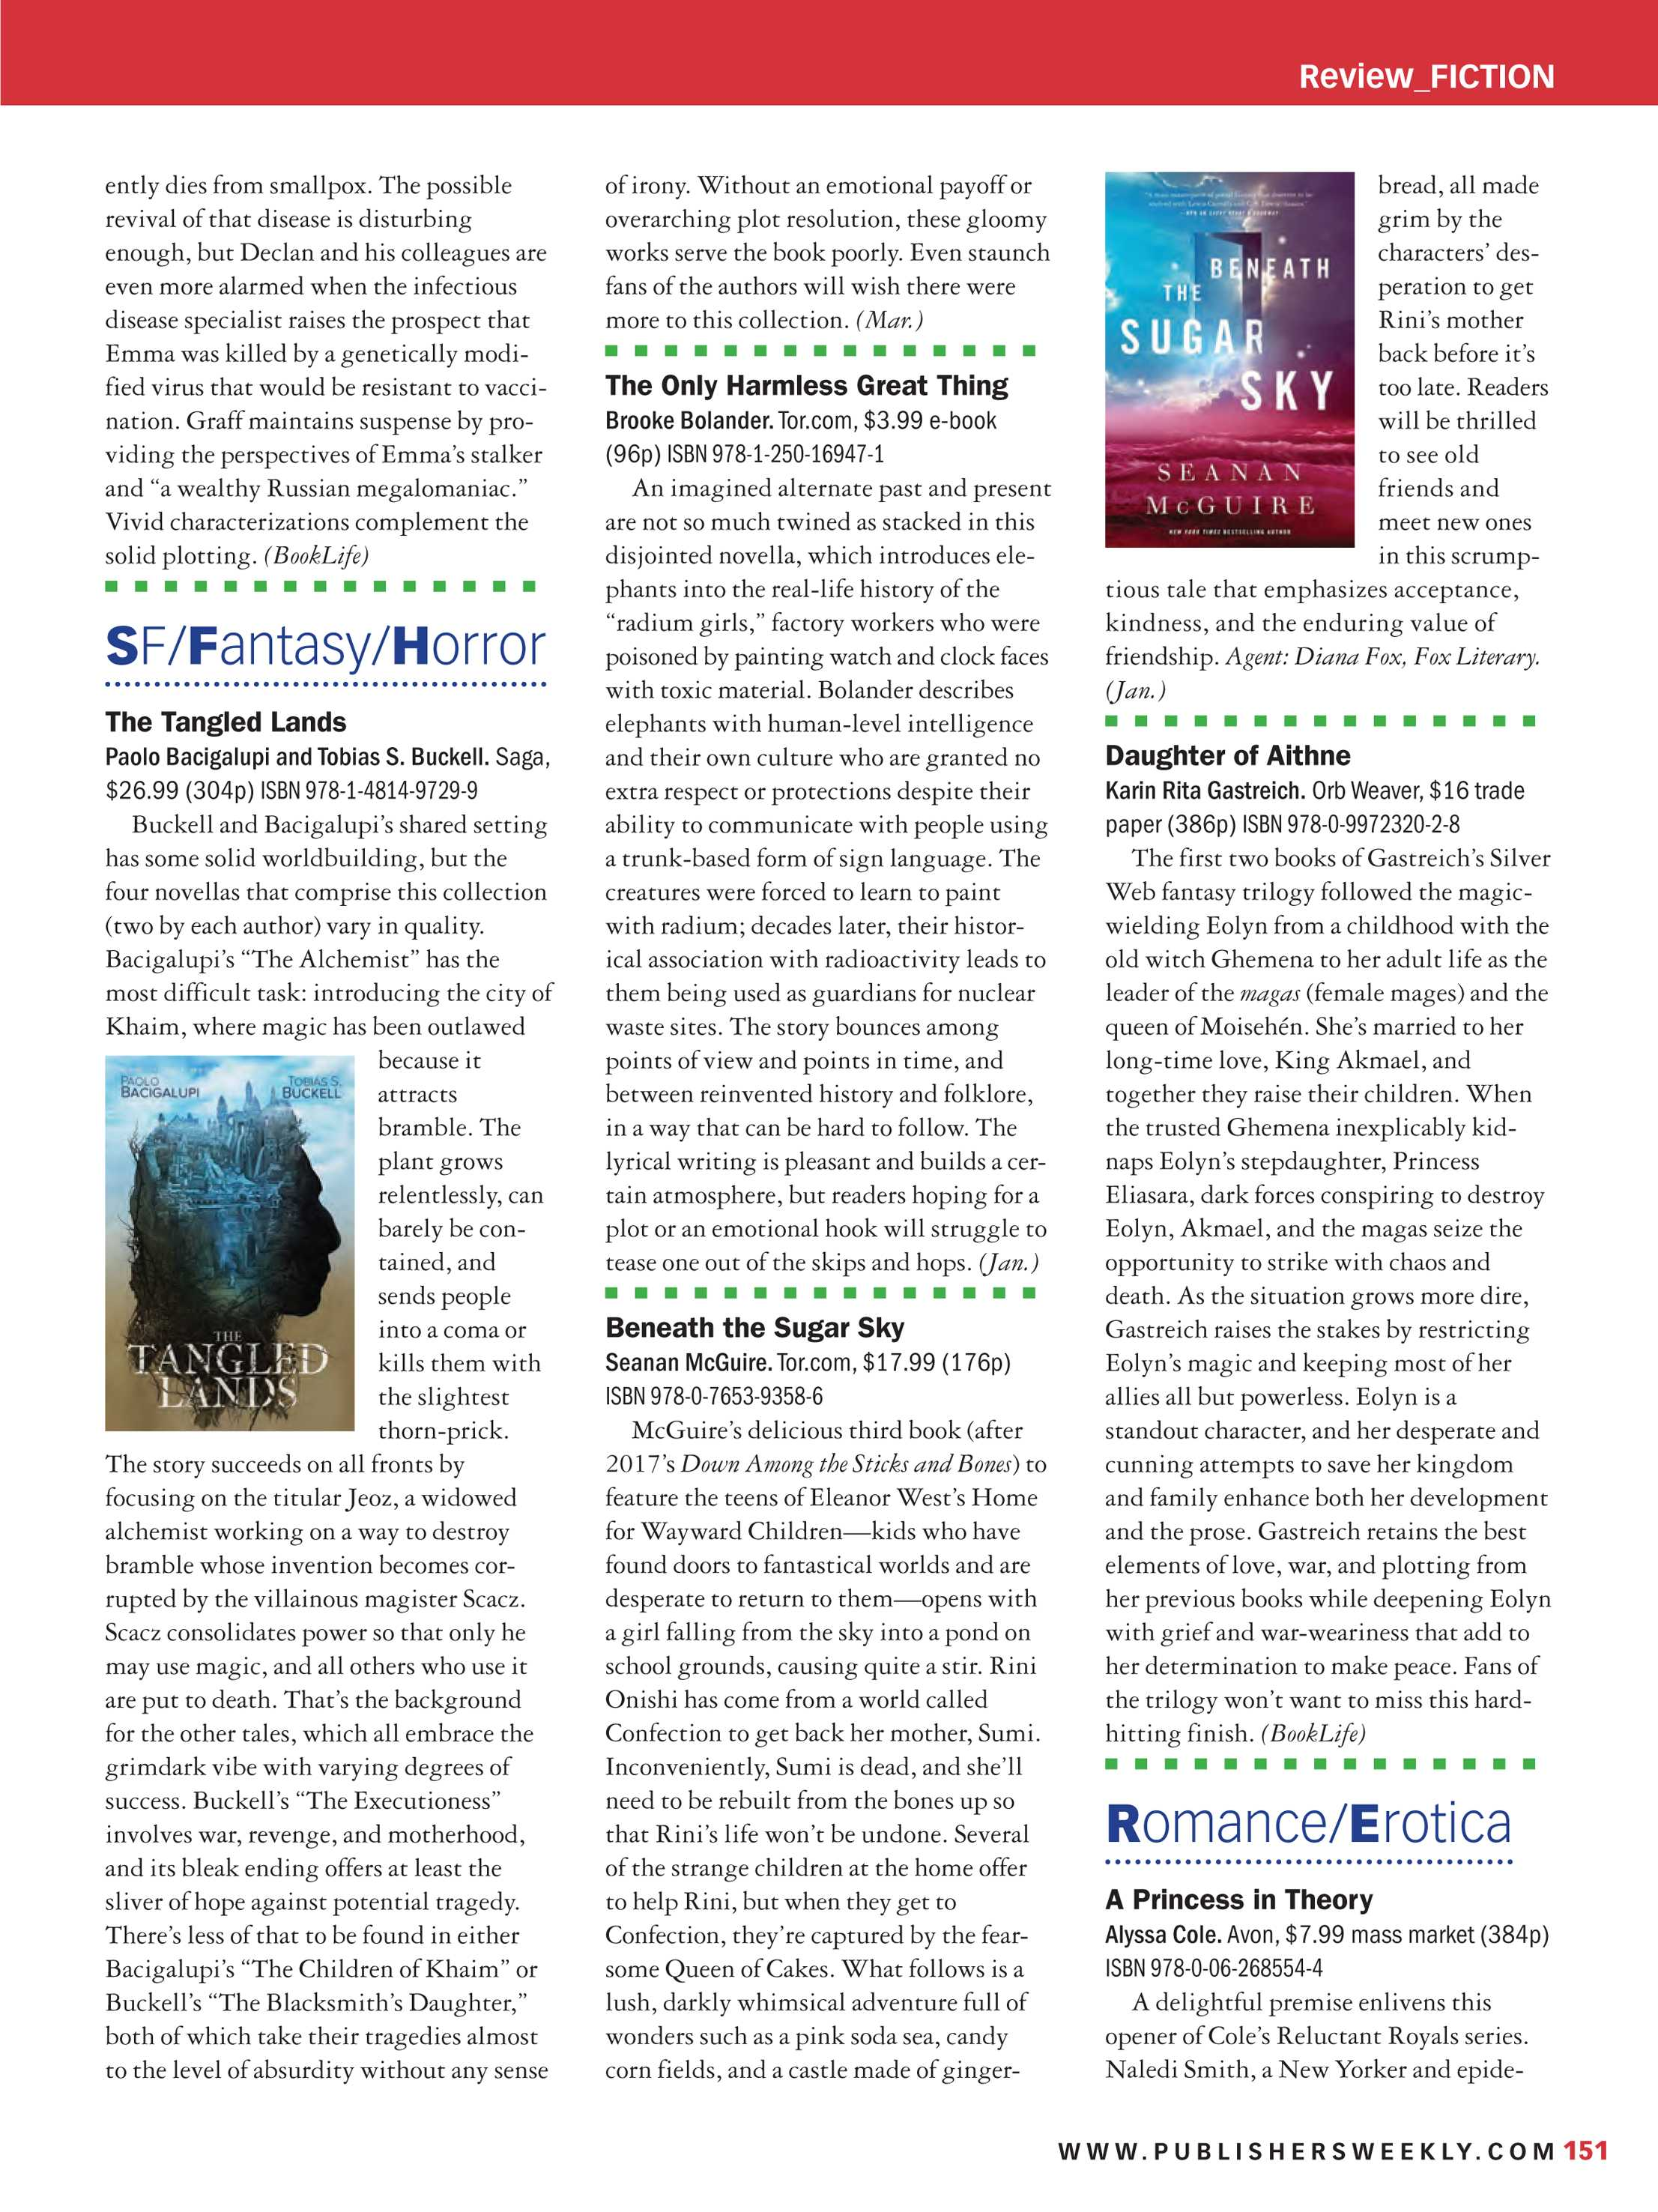 Publishers Weekly - December 11, 2017 - page 151